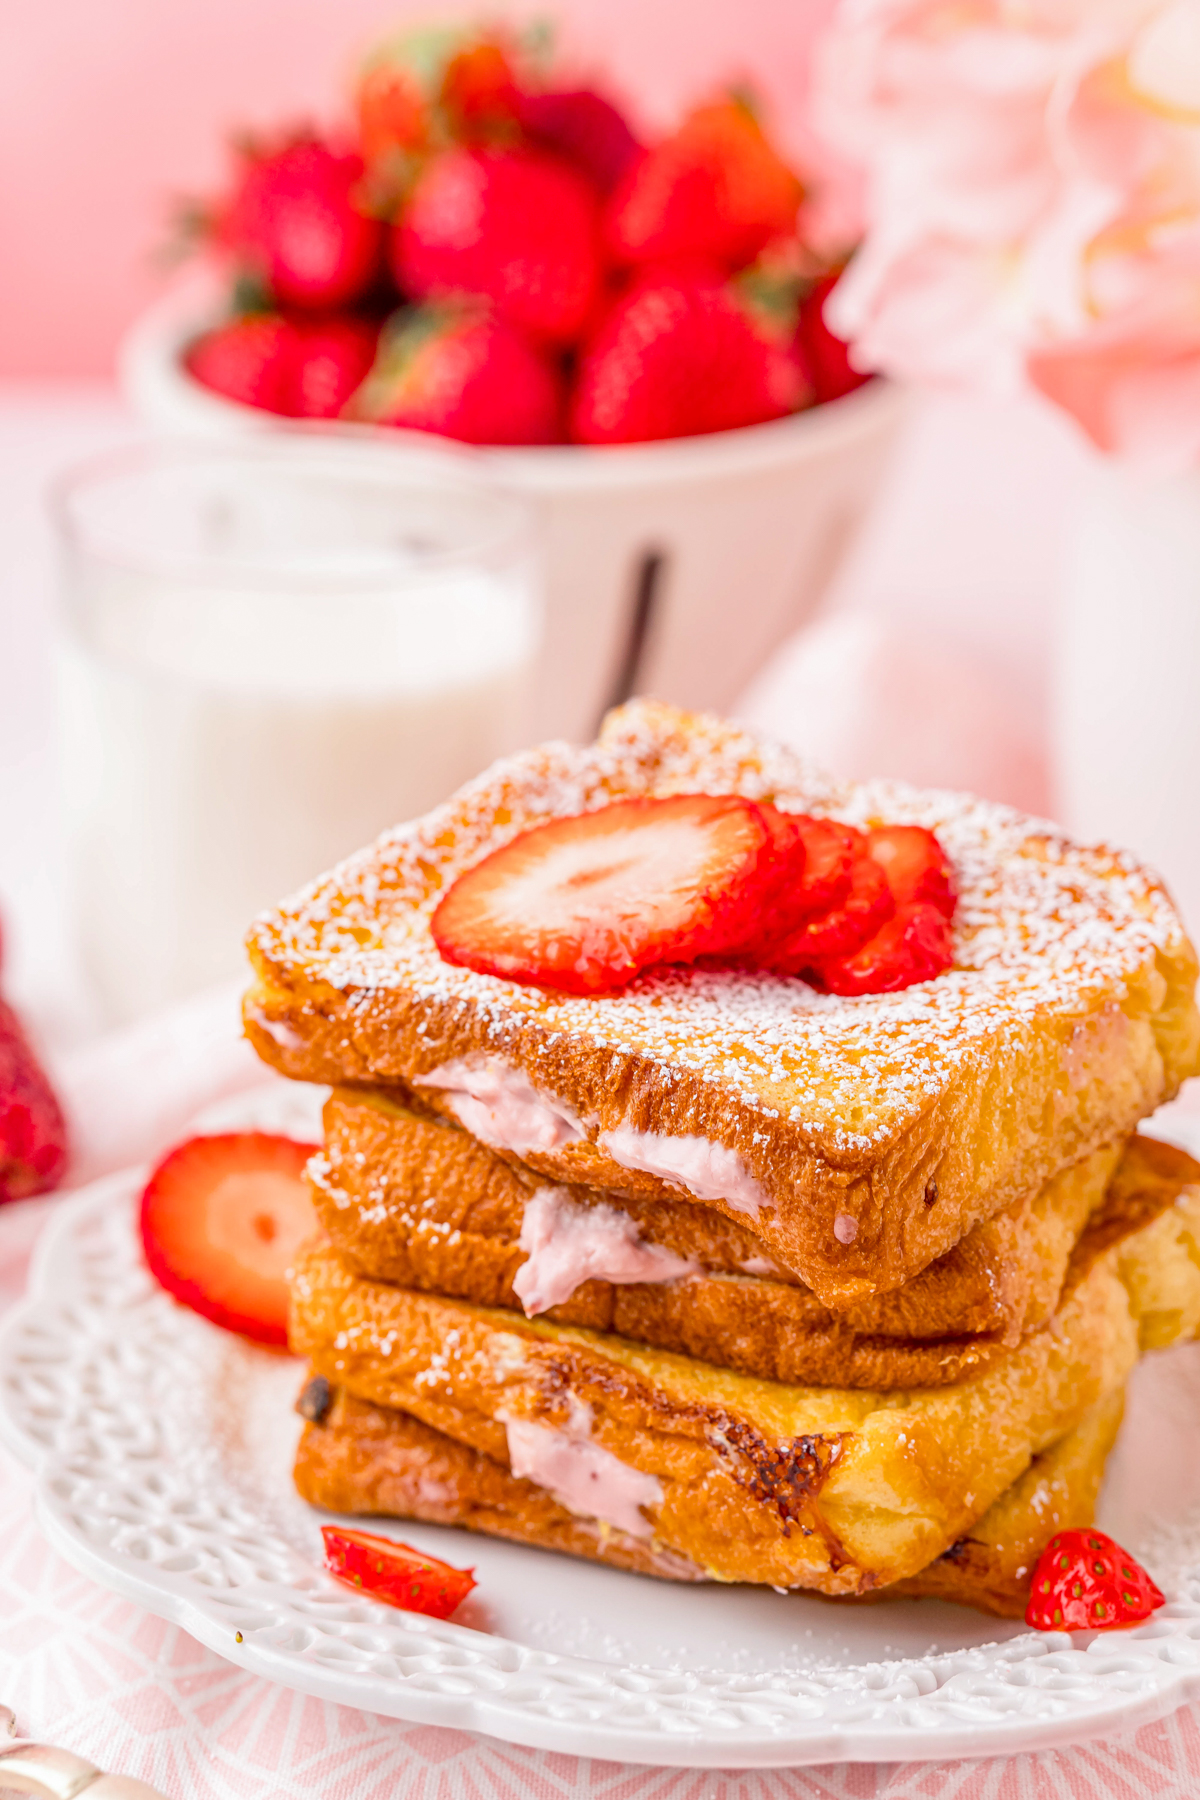 Side view of Stuffed French Toast showing the cheesecake filling